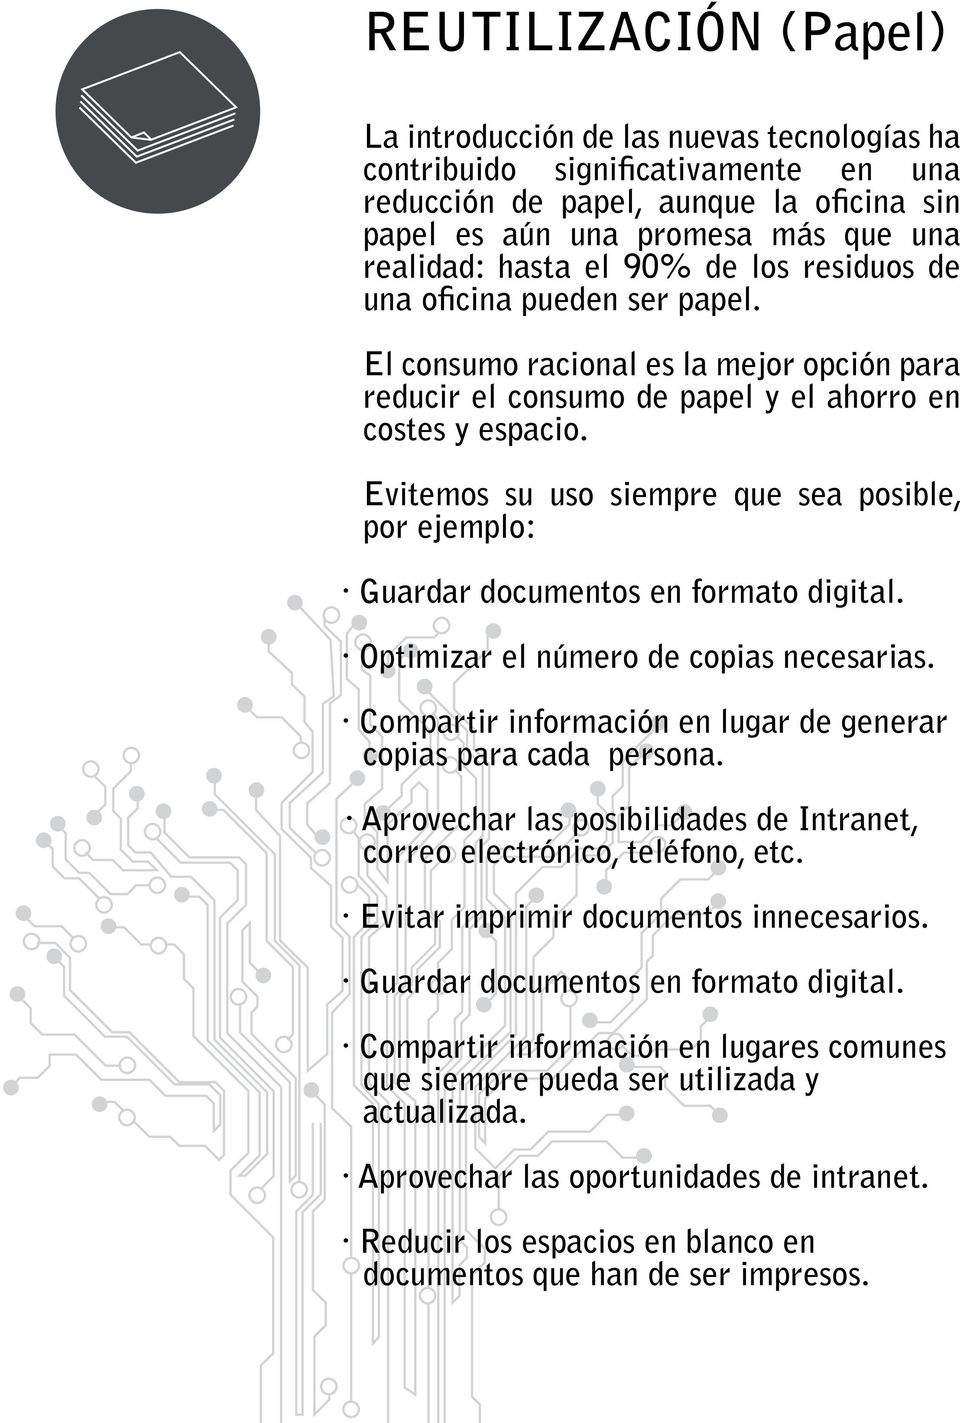 Evitemos su uso siempre que sea posible, por ejemplo: Guardar documentos en formato digital. Optimizar el número de copias necesarias.